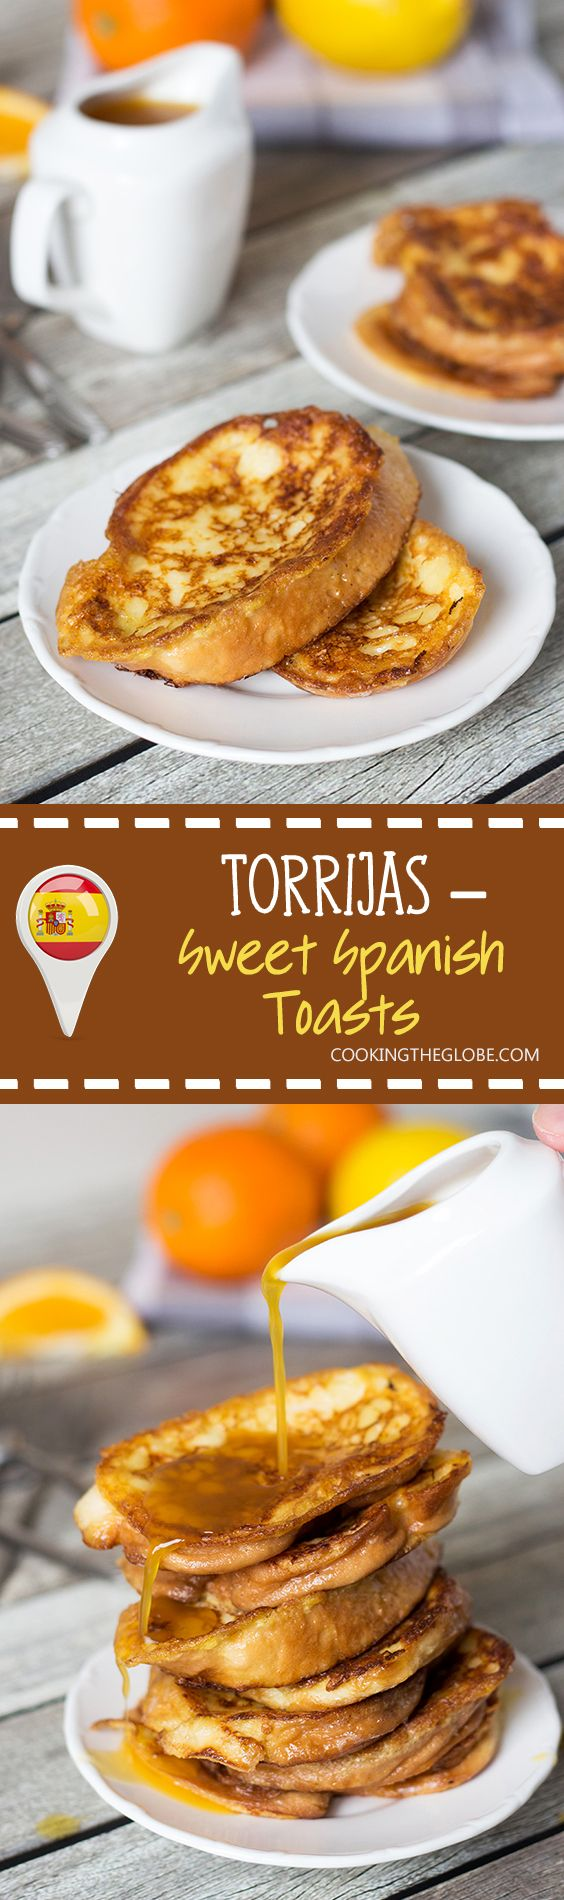 These sweet Spanish toasts, called Torrijas, are soaked in milk and drizzled with an orange-brandy syrup! | cookingtheglobe.com